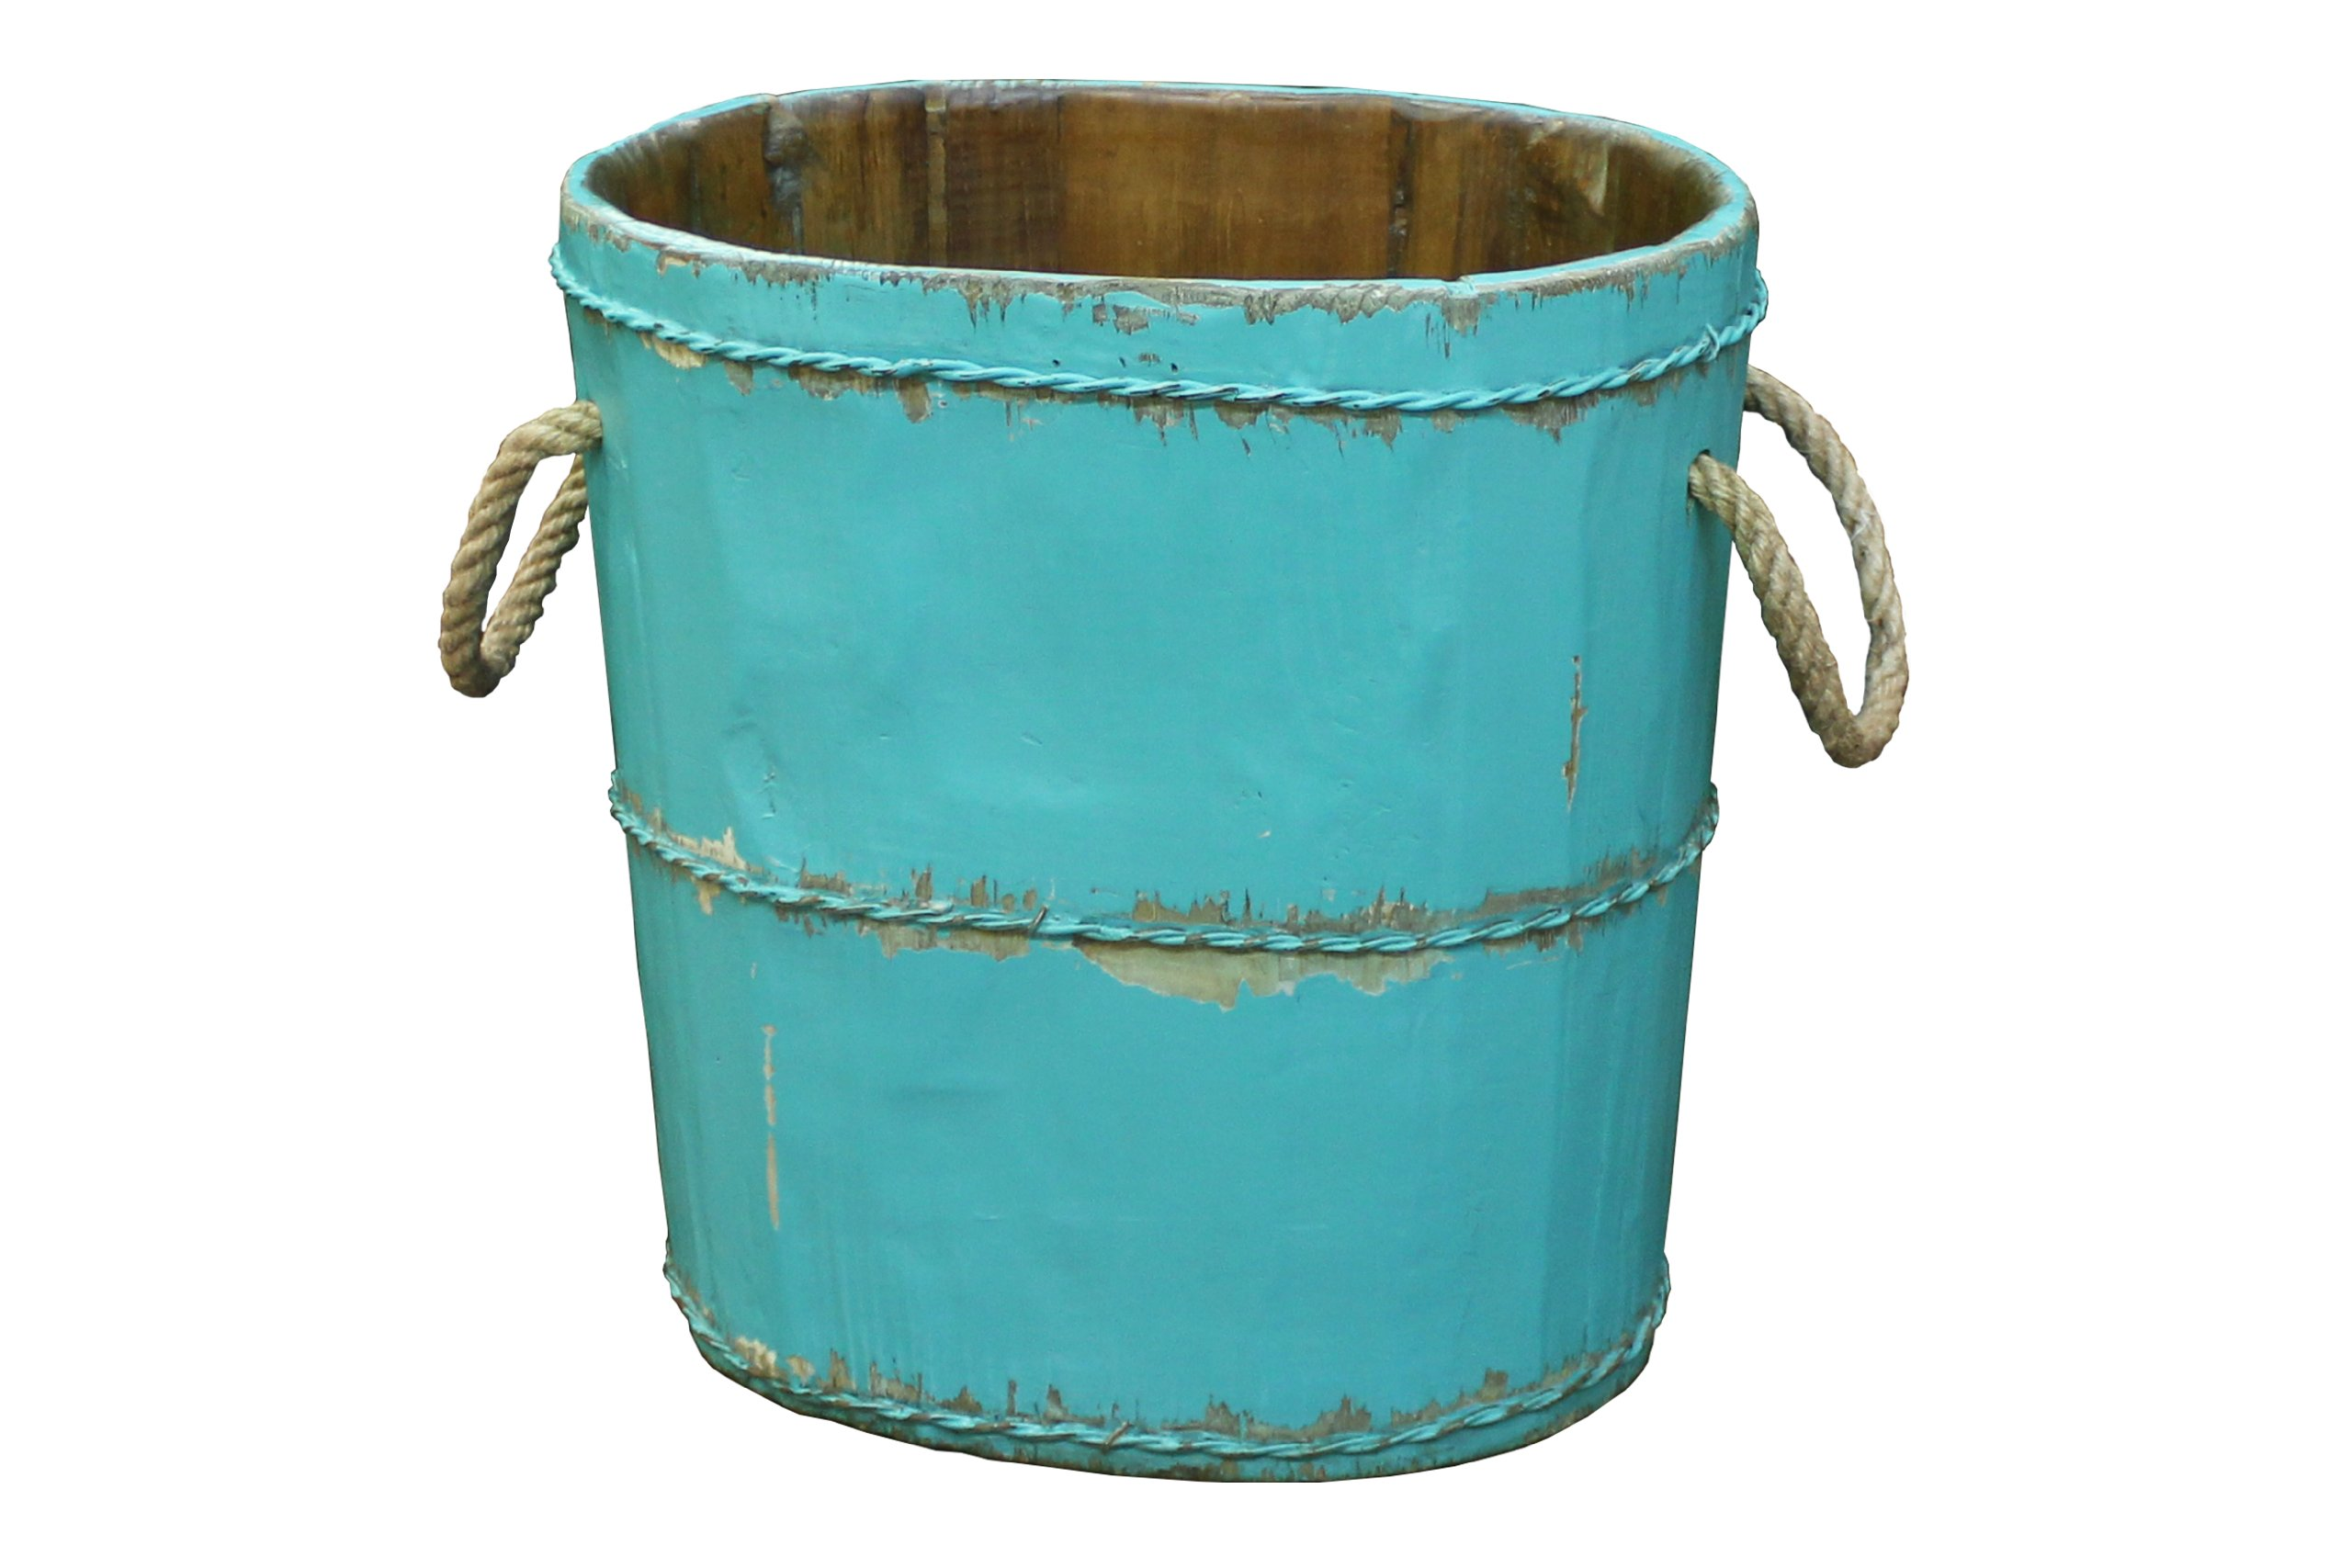 Antique Revival Altai Tapered Wooden Bucket, Turquoise